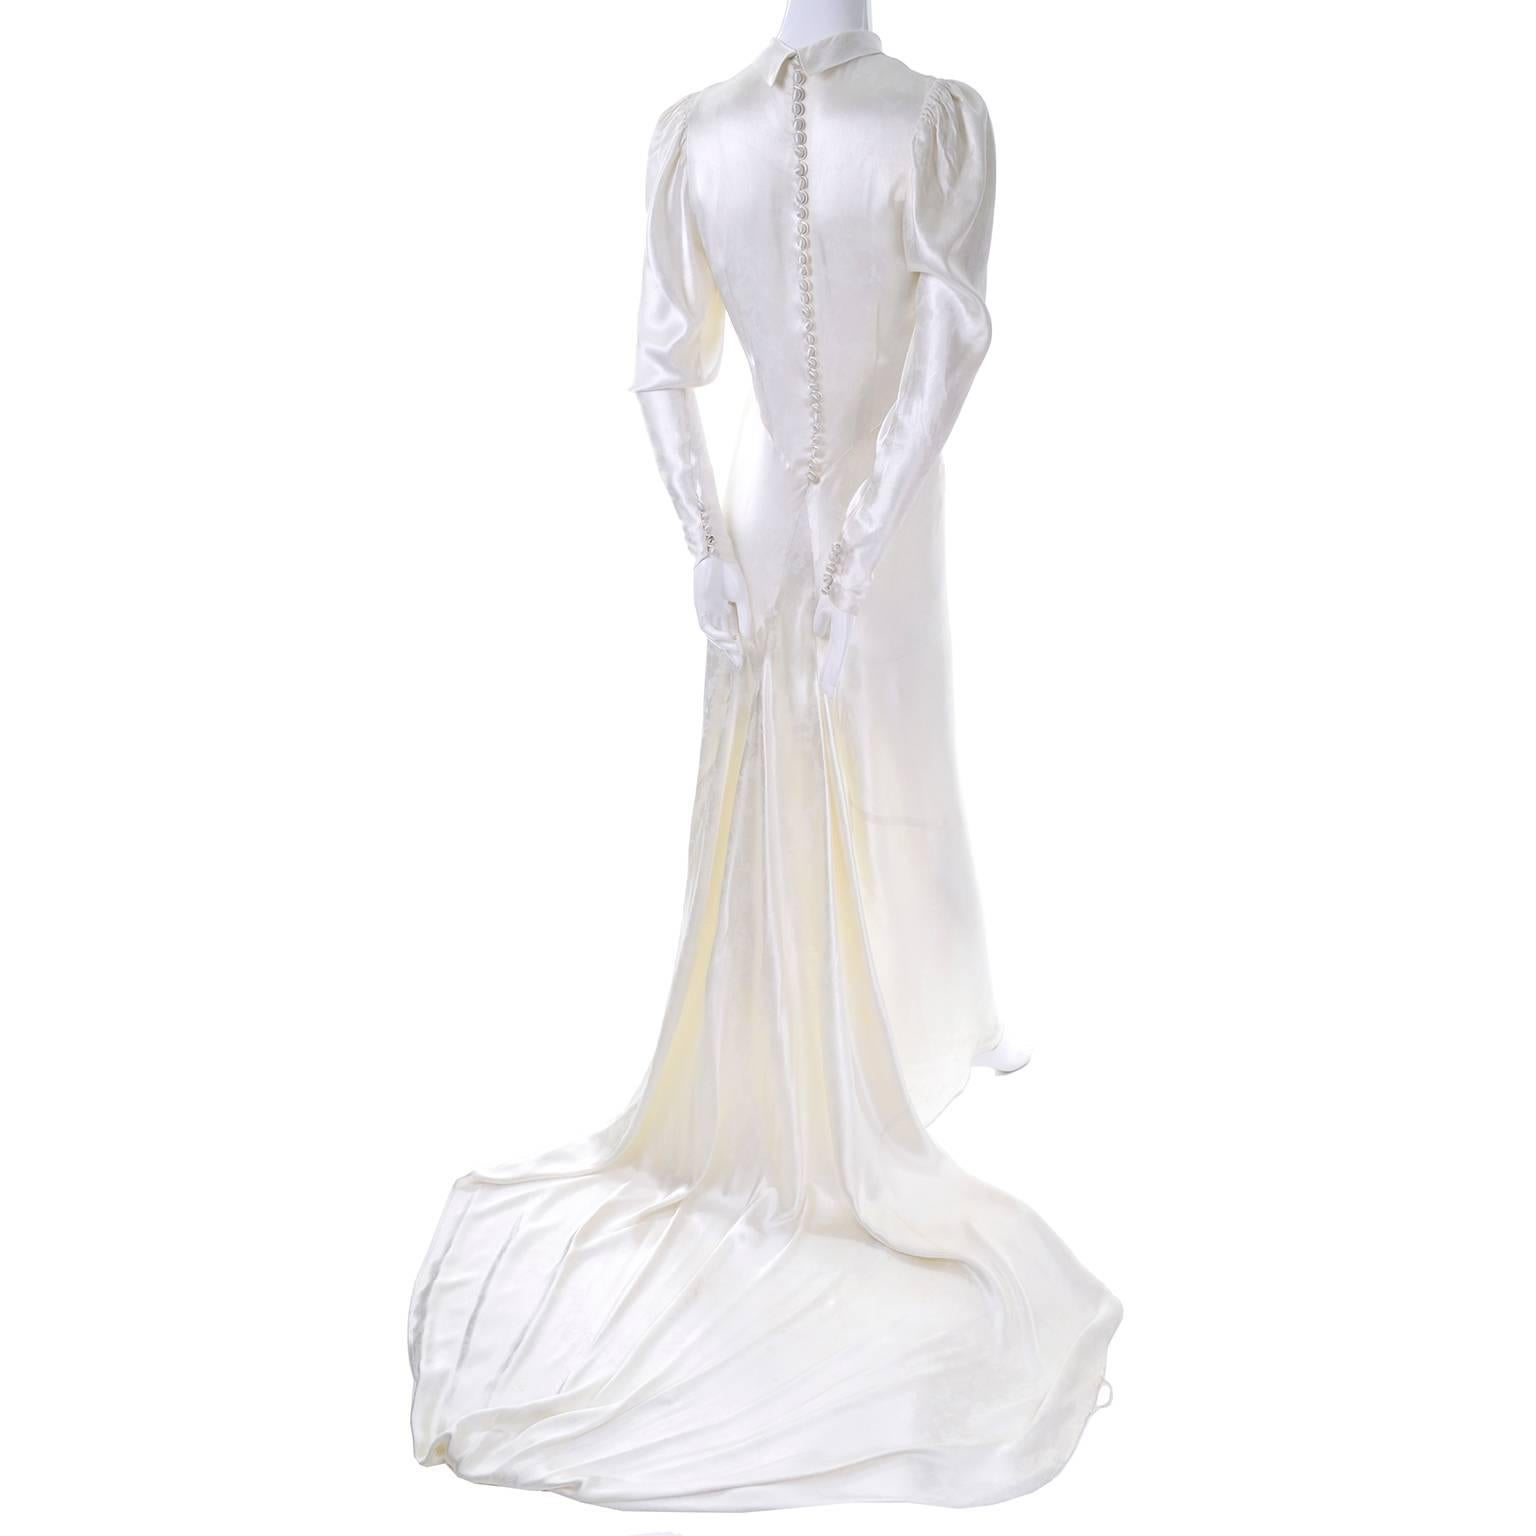 1930s Vintage Ivory Silk Satin Wedding Dress with Train and High ...